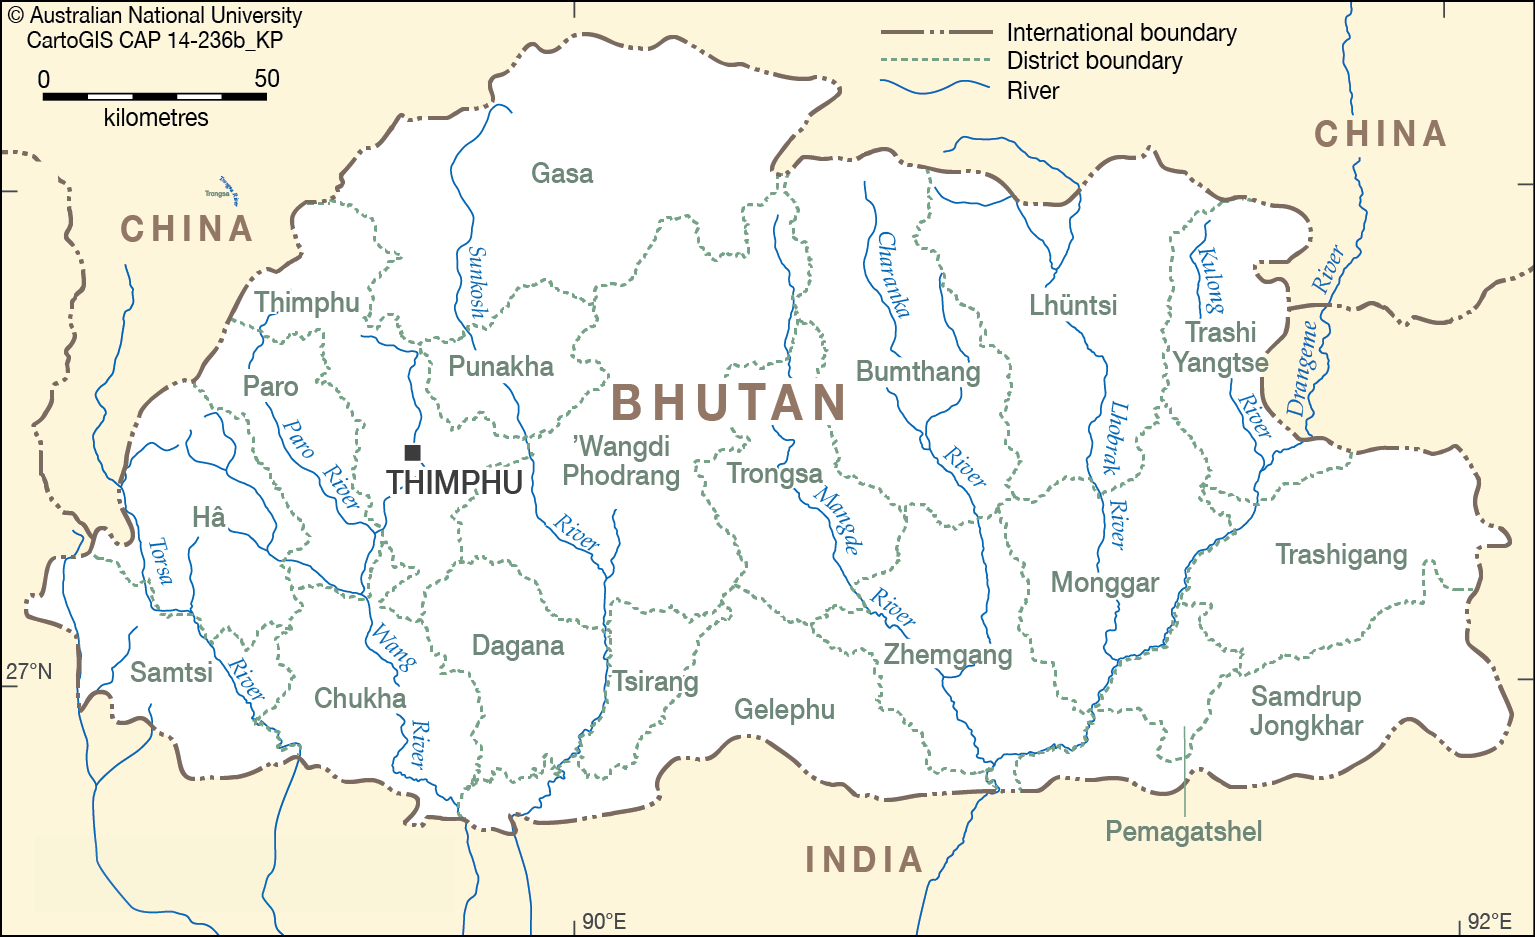 bhutan rivers  cartogis services maps online  anu - map  png